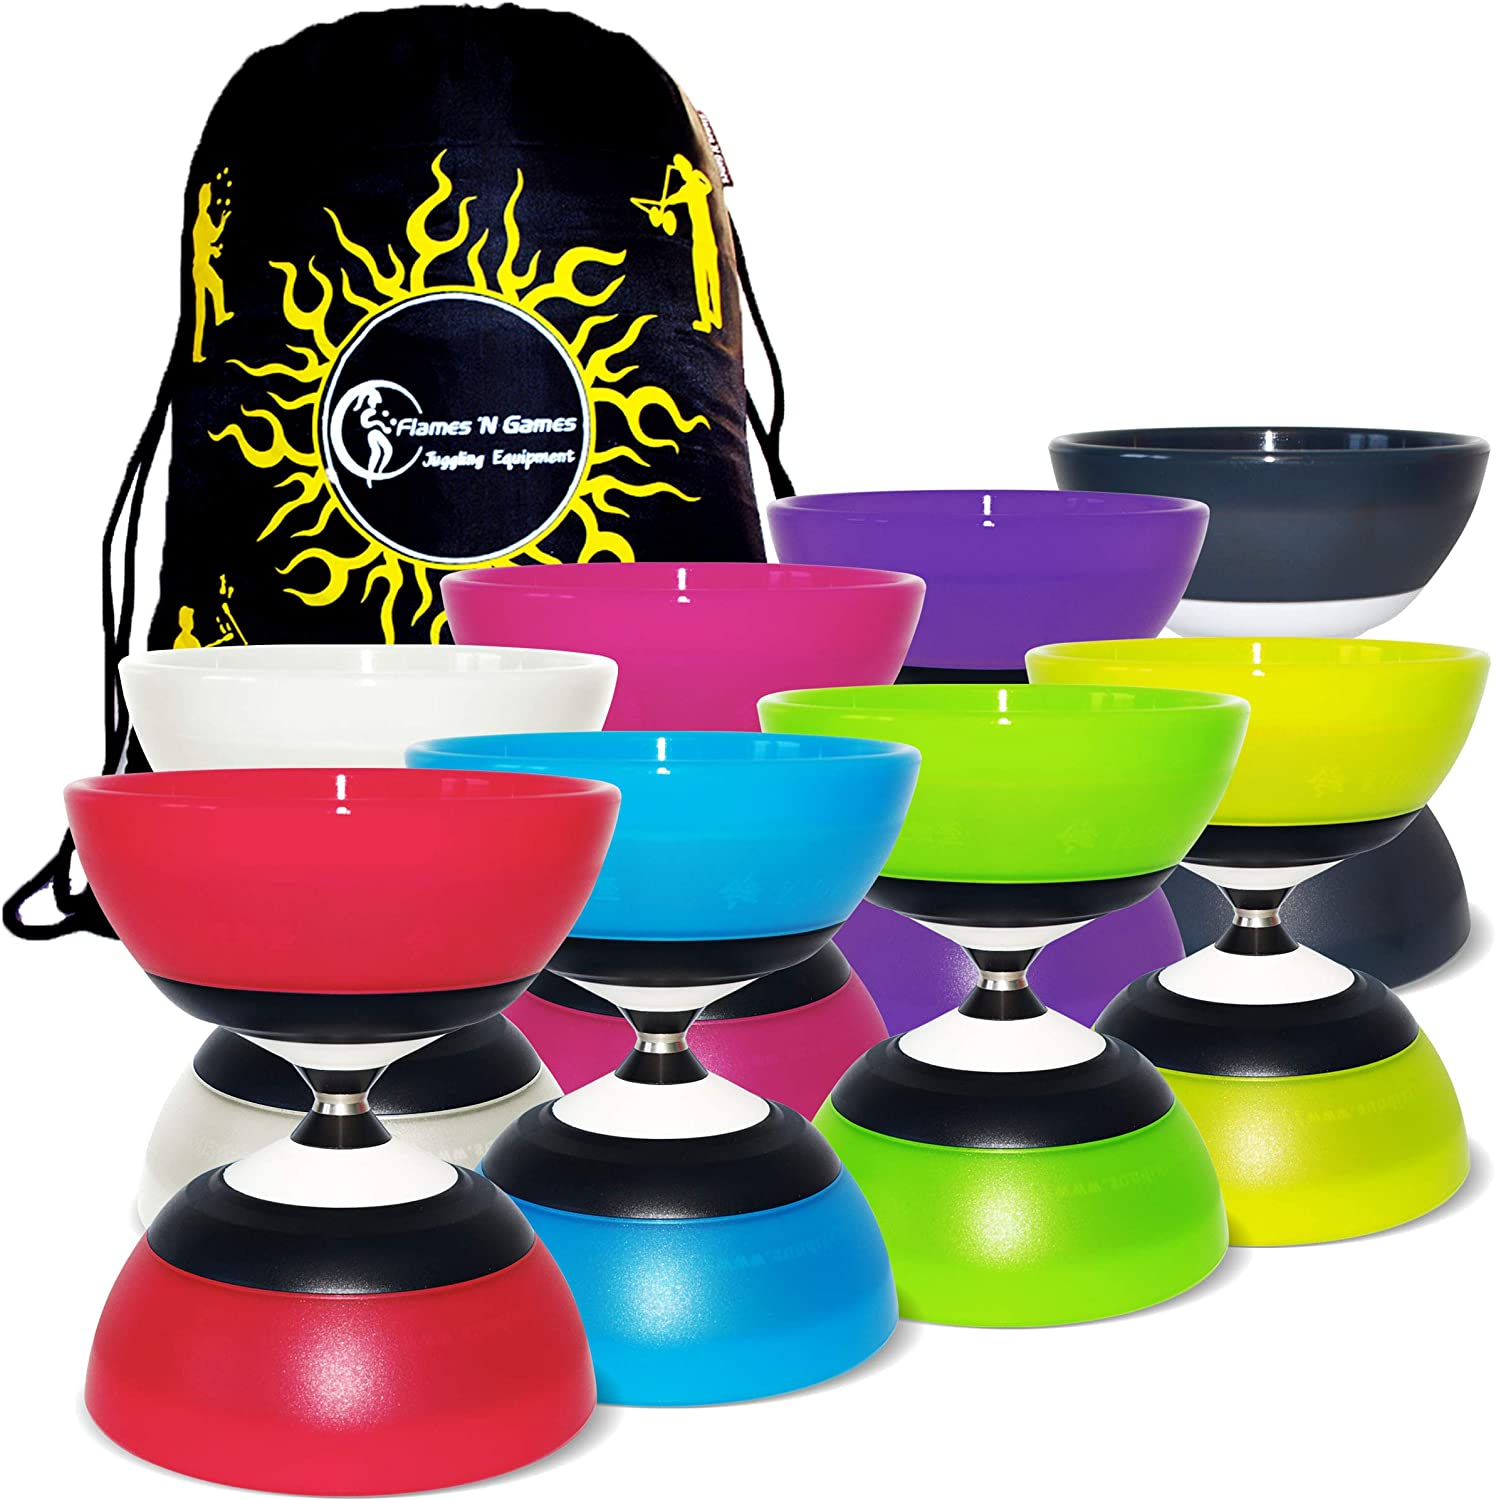 Sundia Evo '5' Bearing Axle Diabolo + Travel Bag  High Performance Spinning Diabolo for Professionals  No Sticks included (Green)